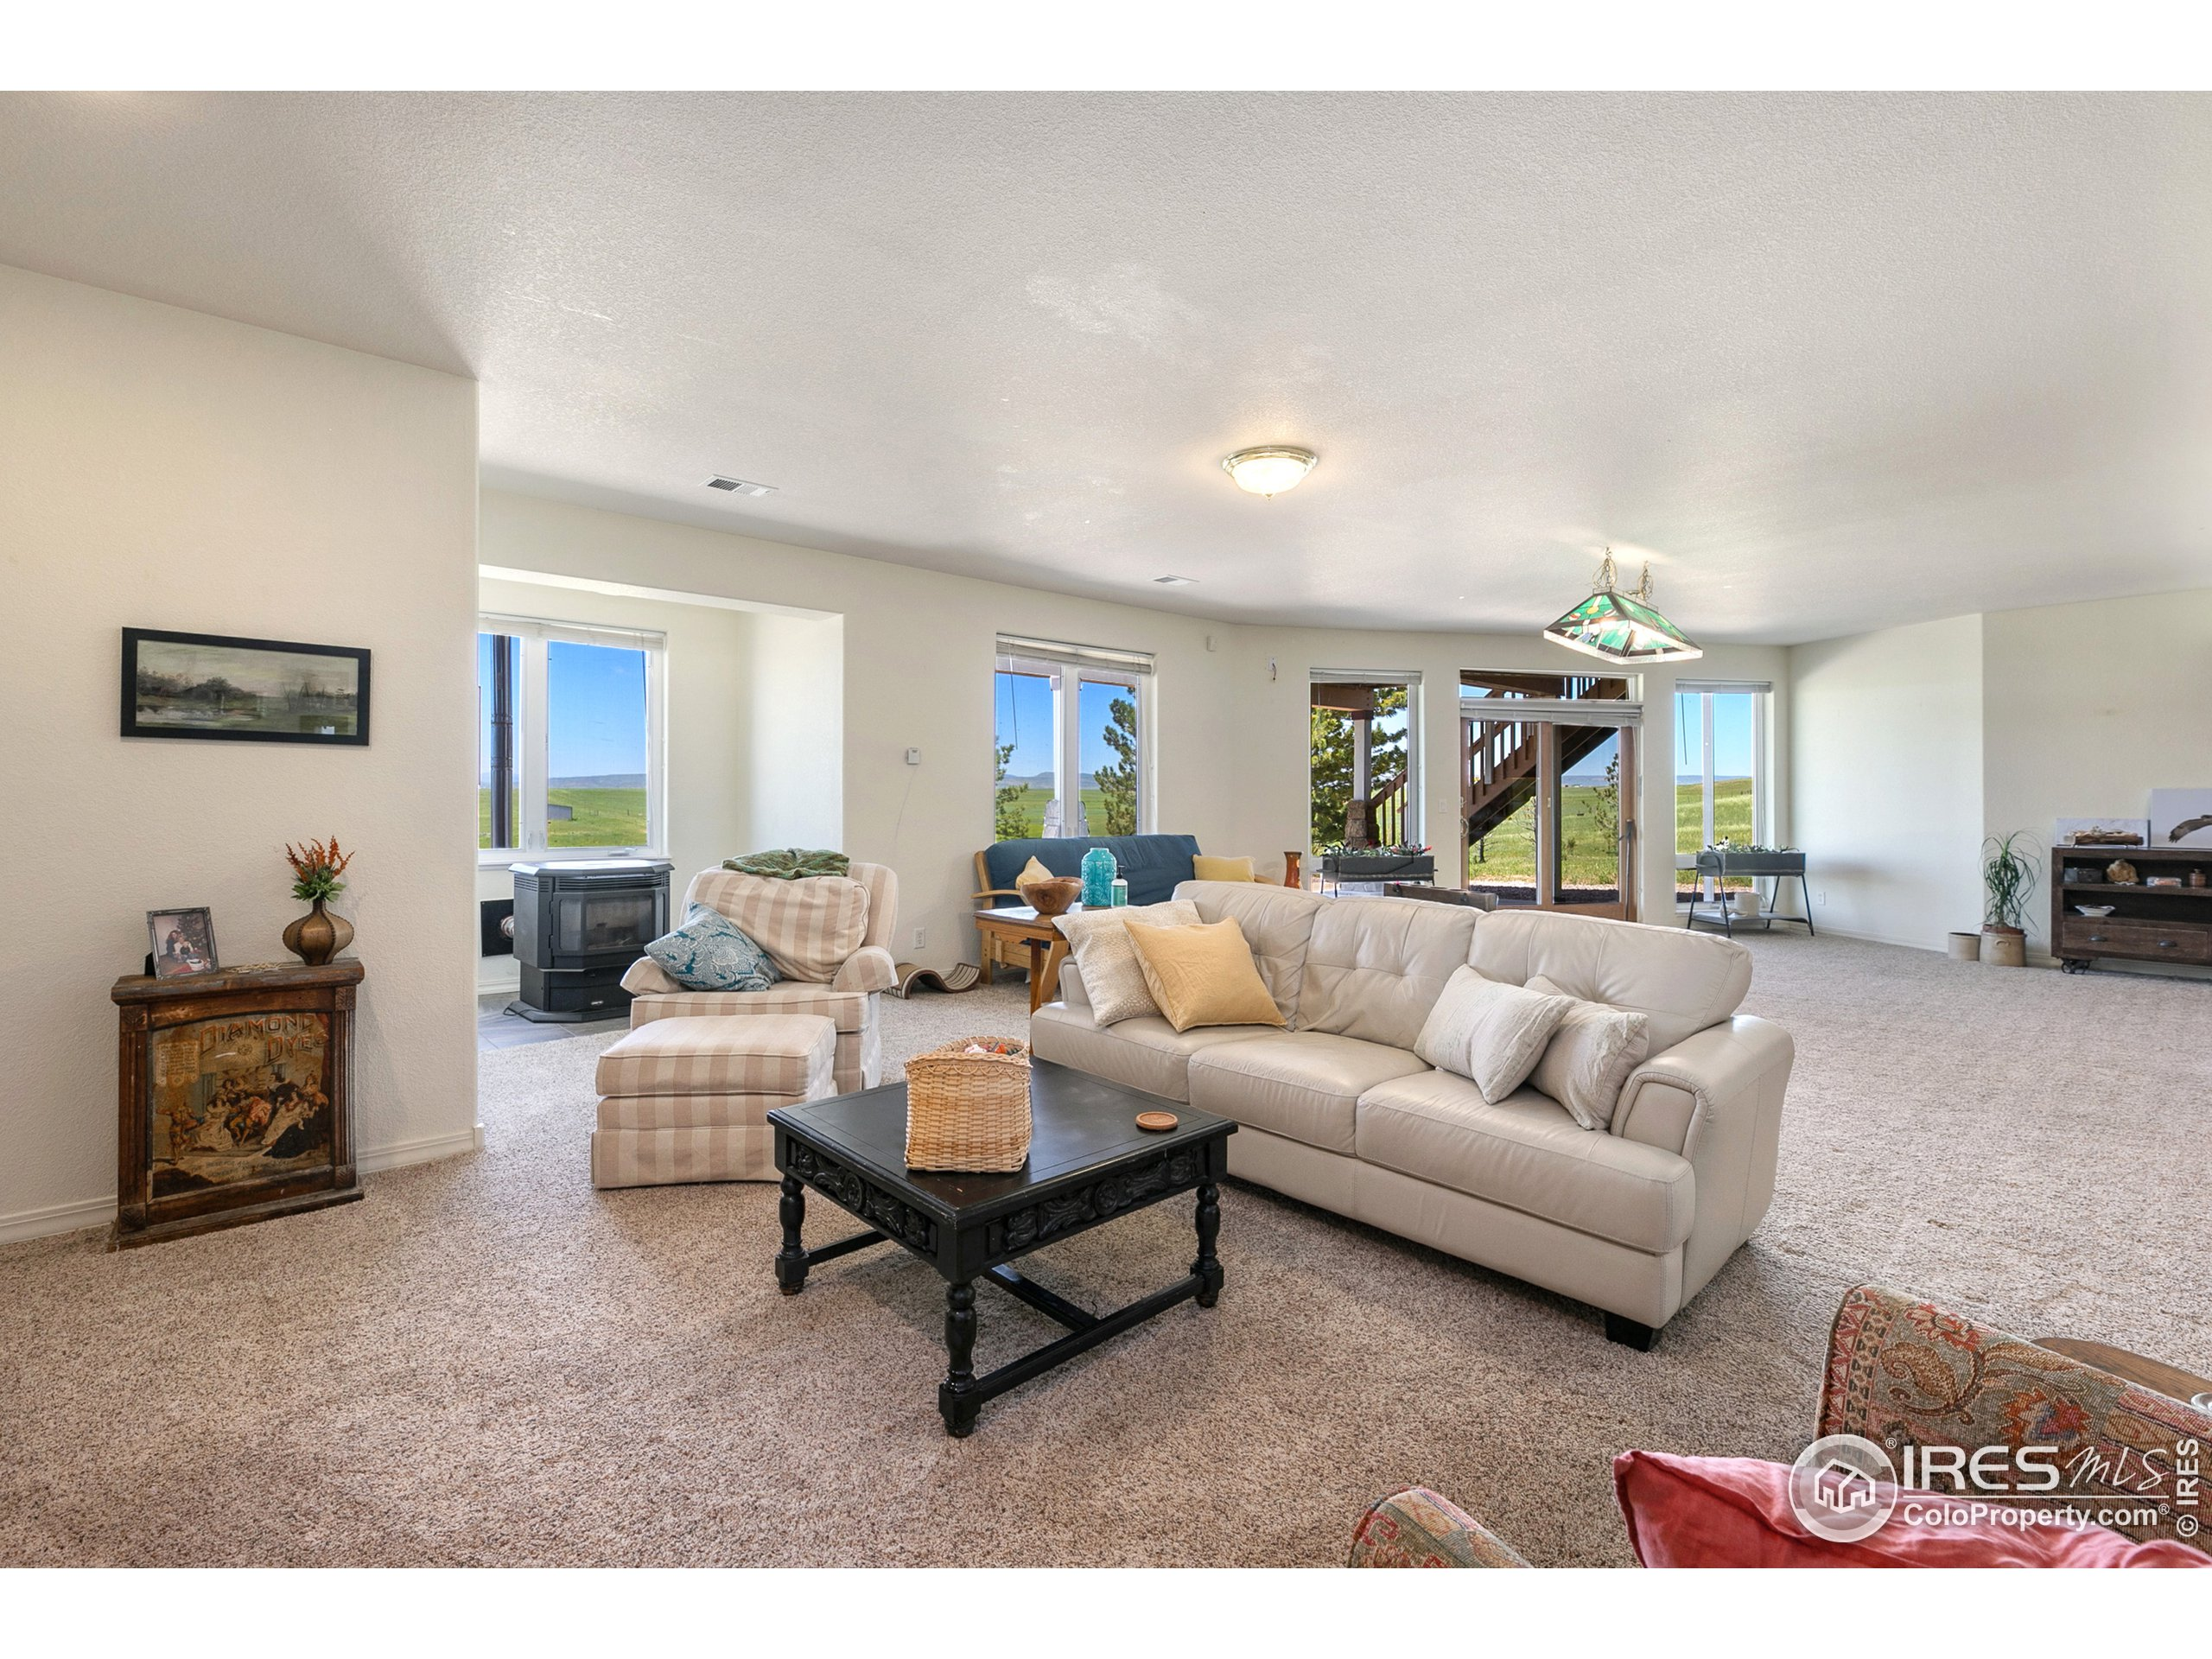 amazing living space in basement with full mountain views!